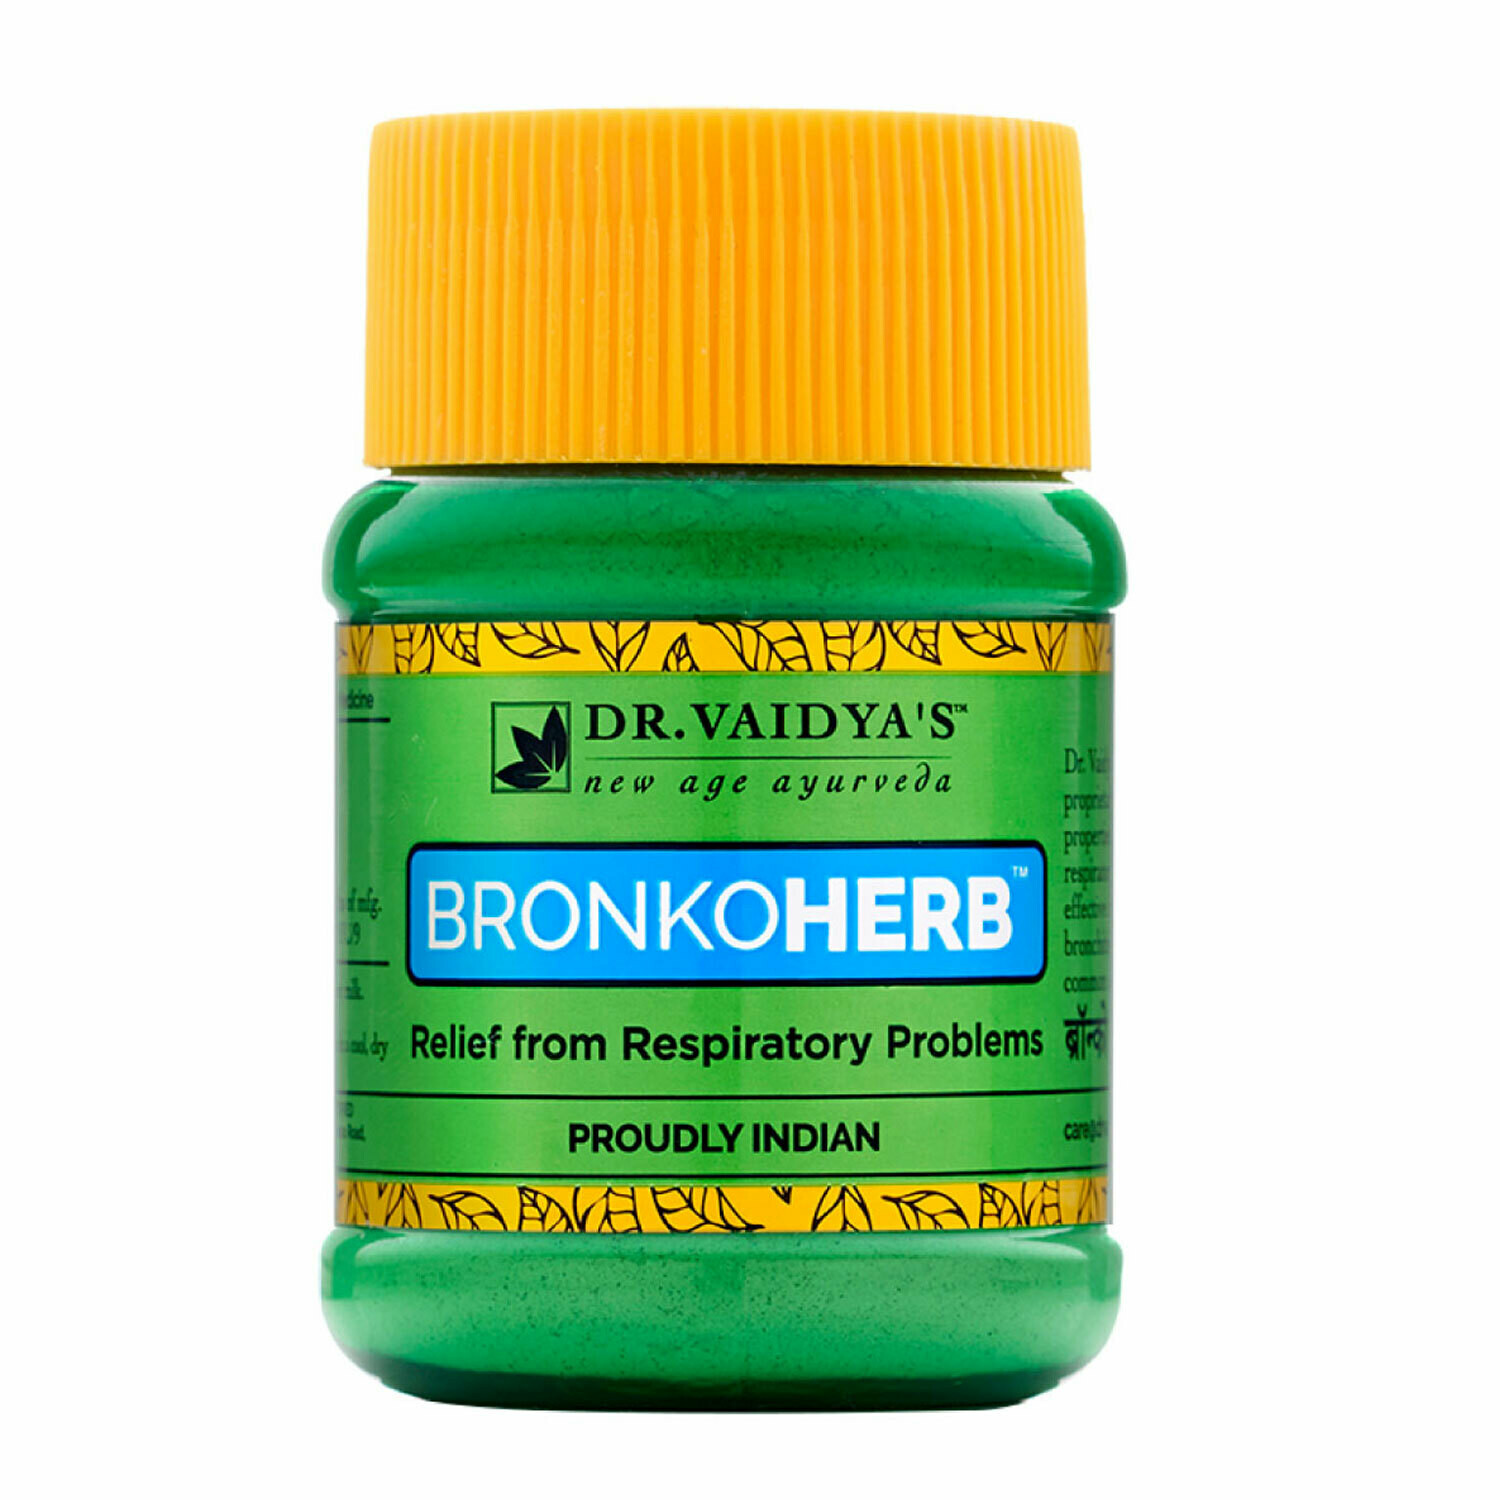 Dr. Vaidya's Bronkoherb Powder Ayurvecic Treatment for Respiratory Problems - Pack of 2